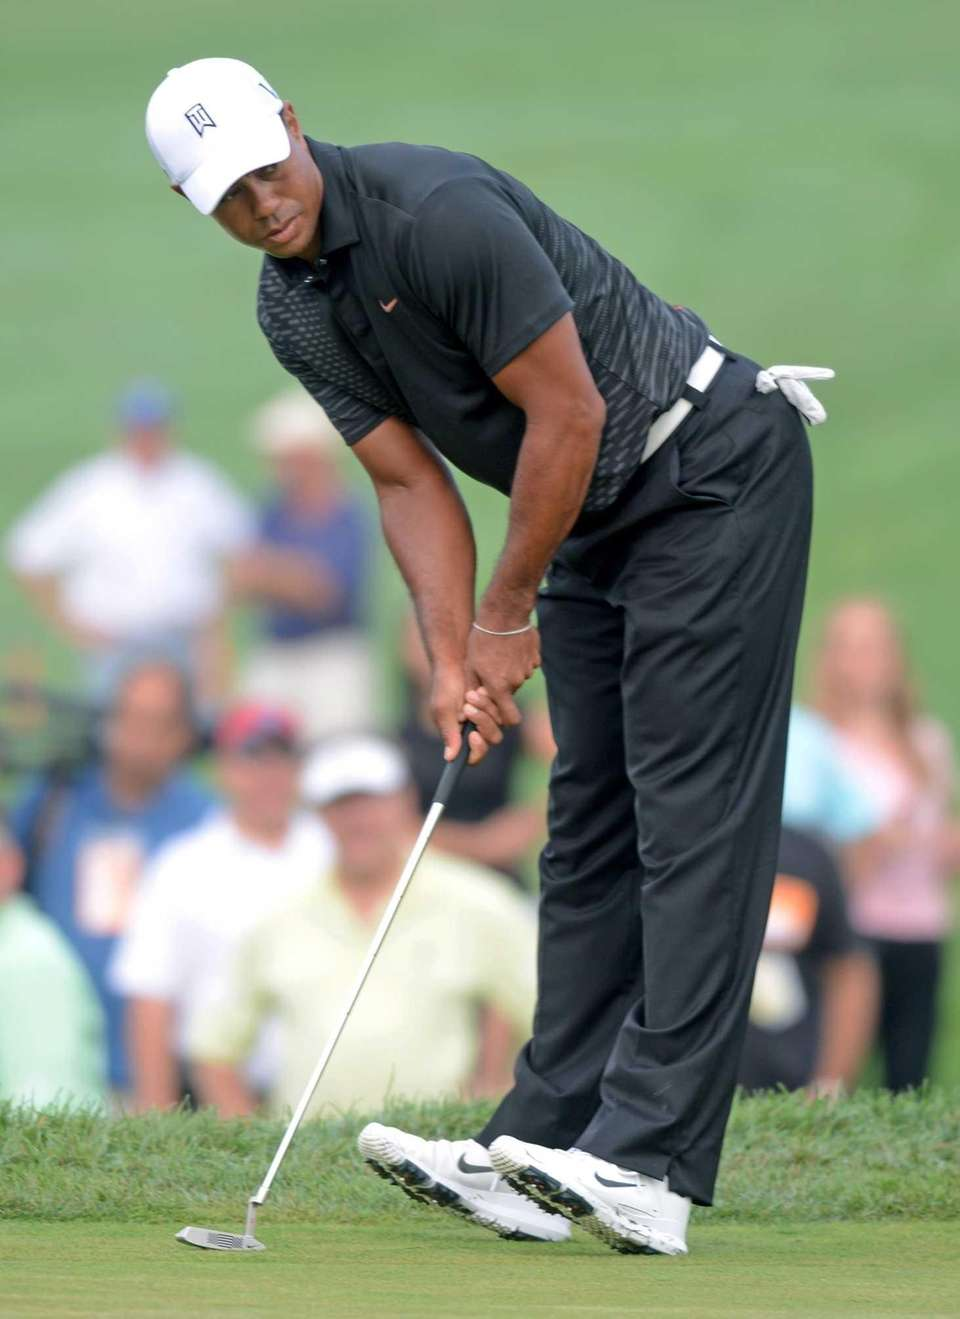 Tiger Woods misses a birdie putt on the